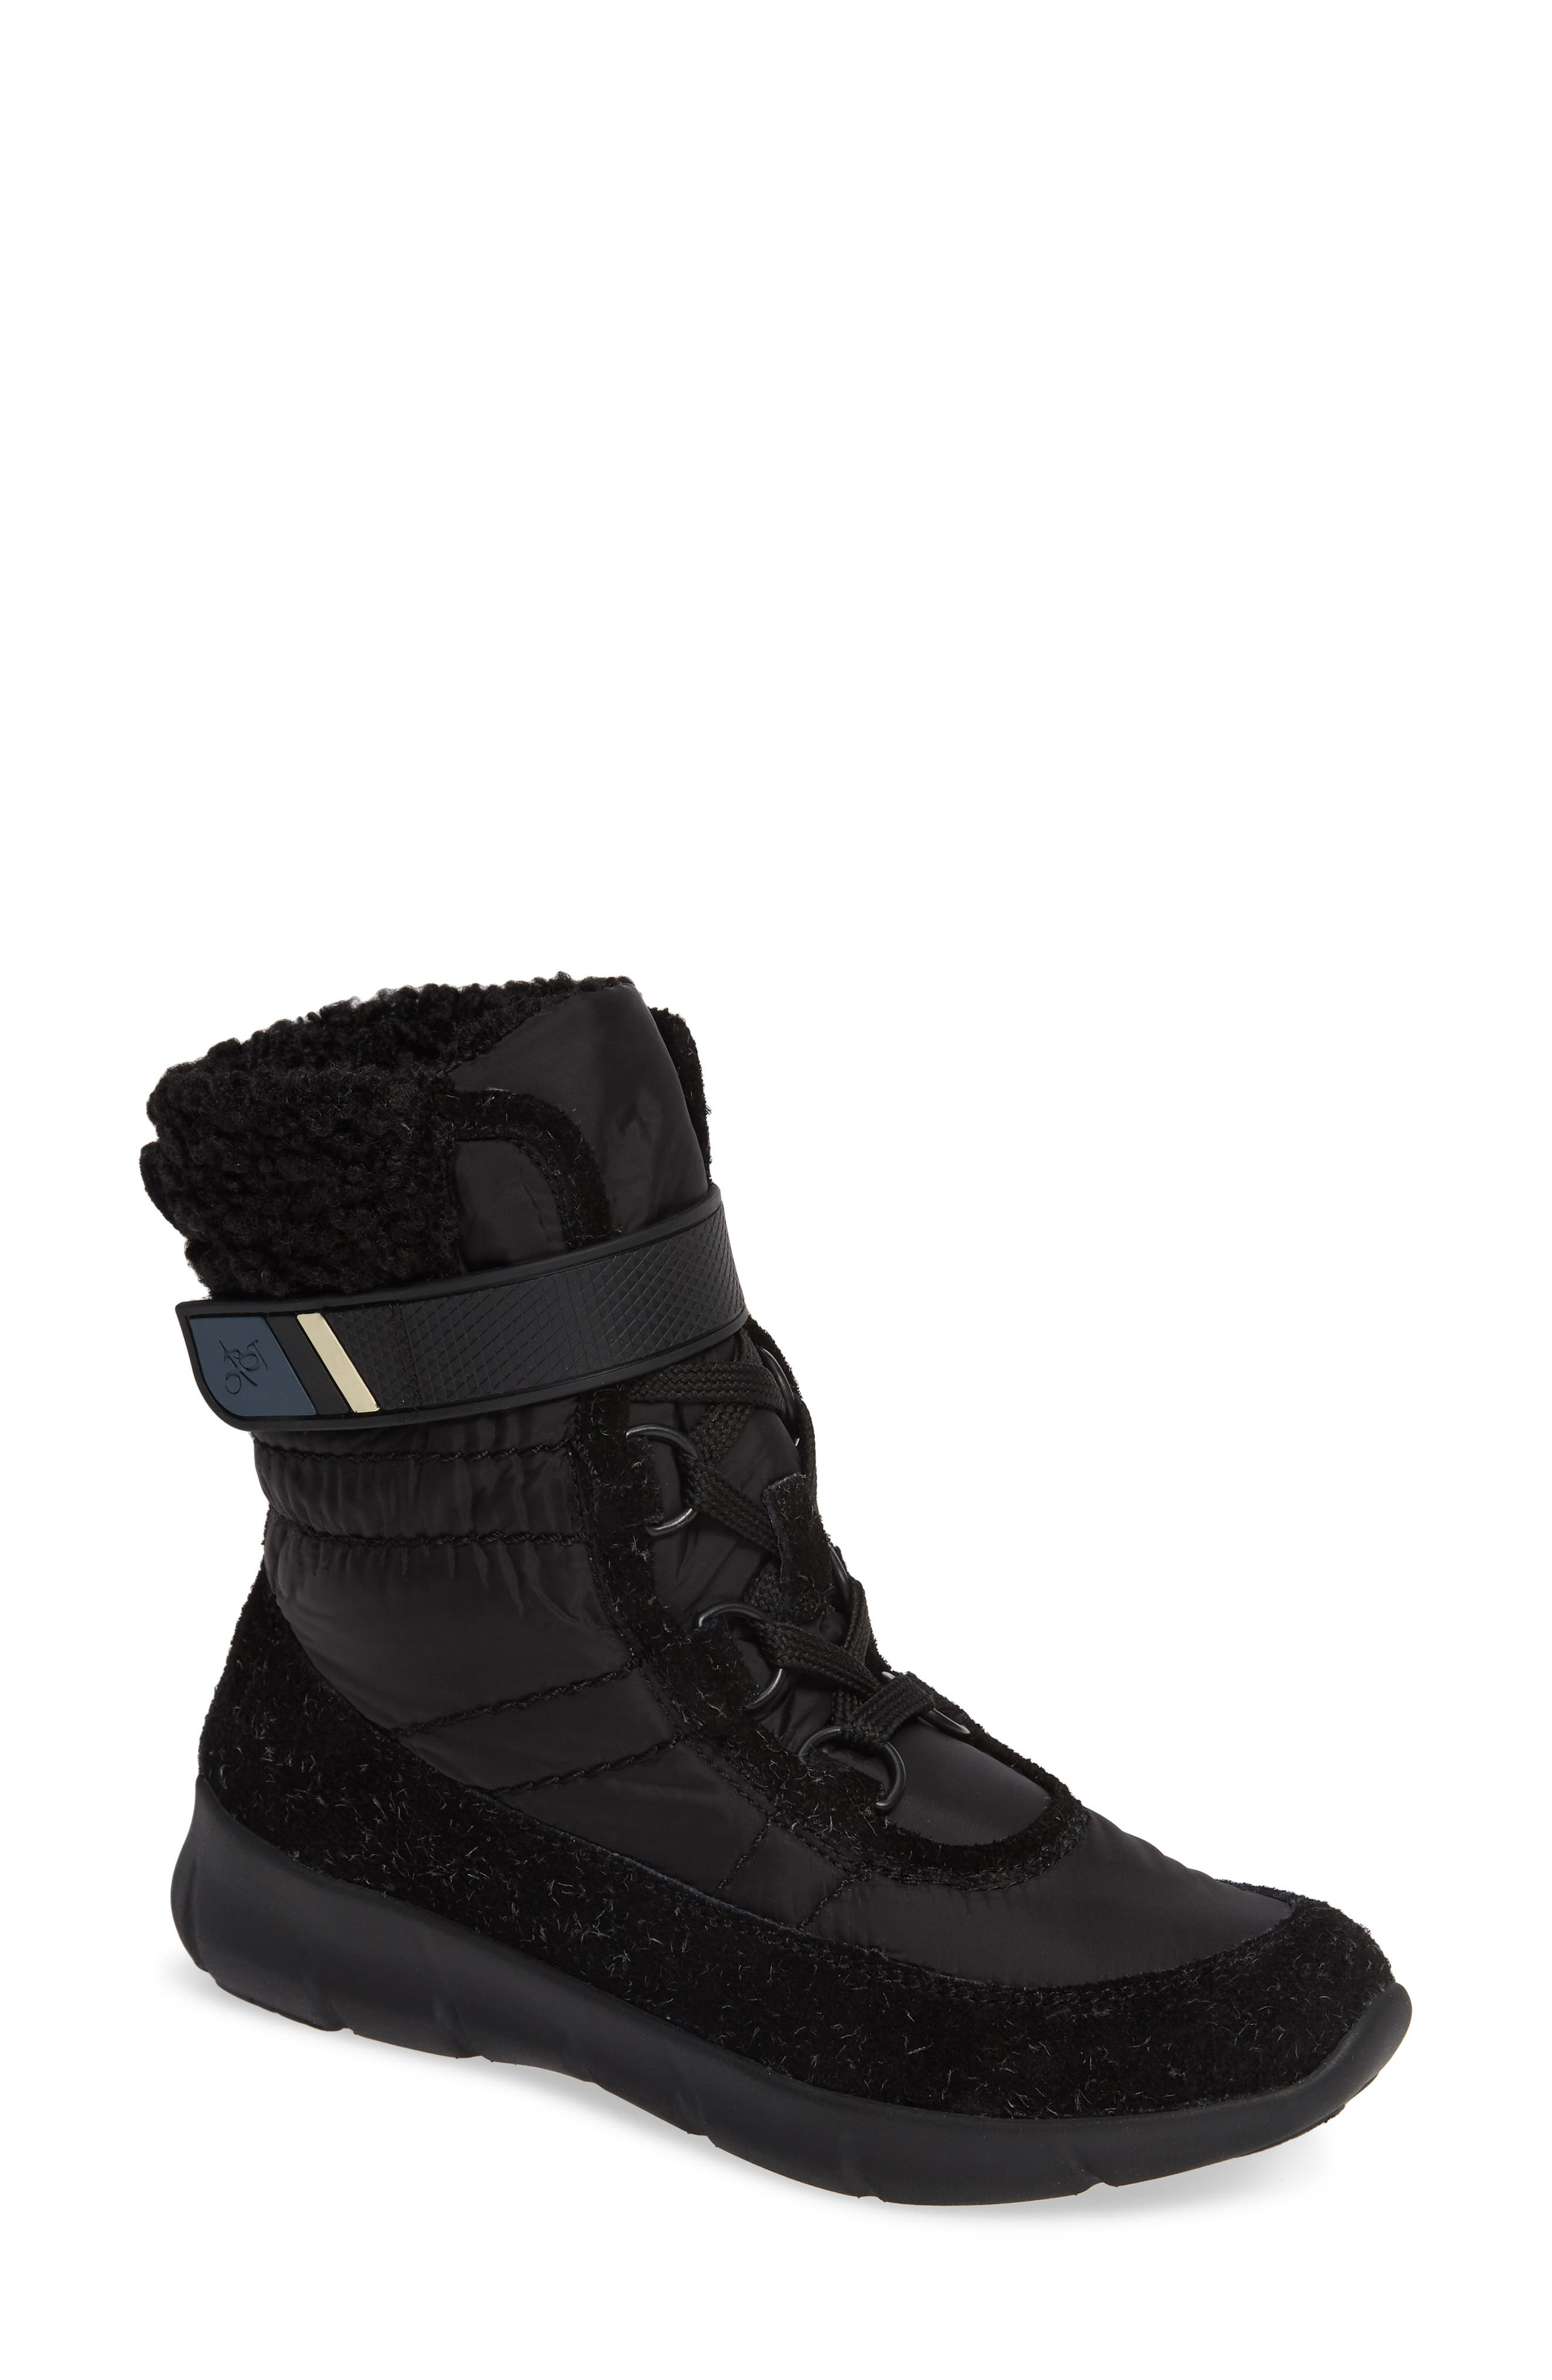 Pioneer Bootie,                             Main thumbnail 1, color,                             BLACK FABRIC